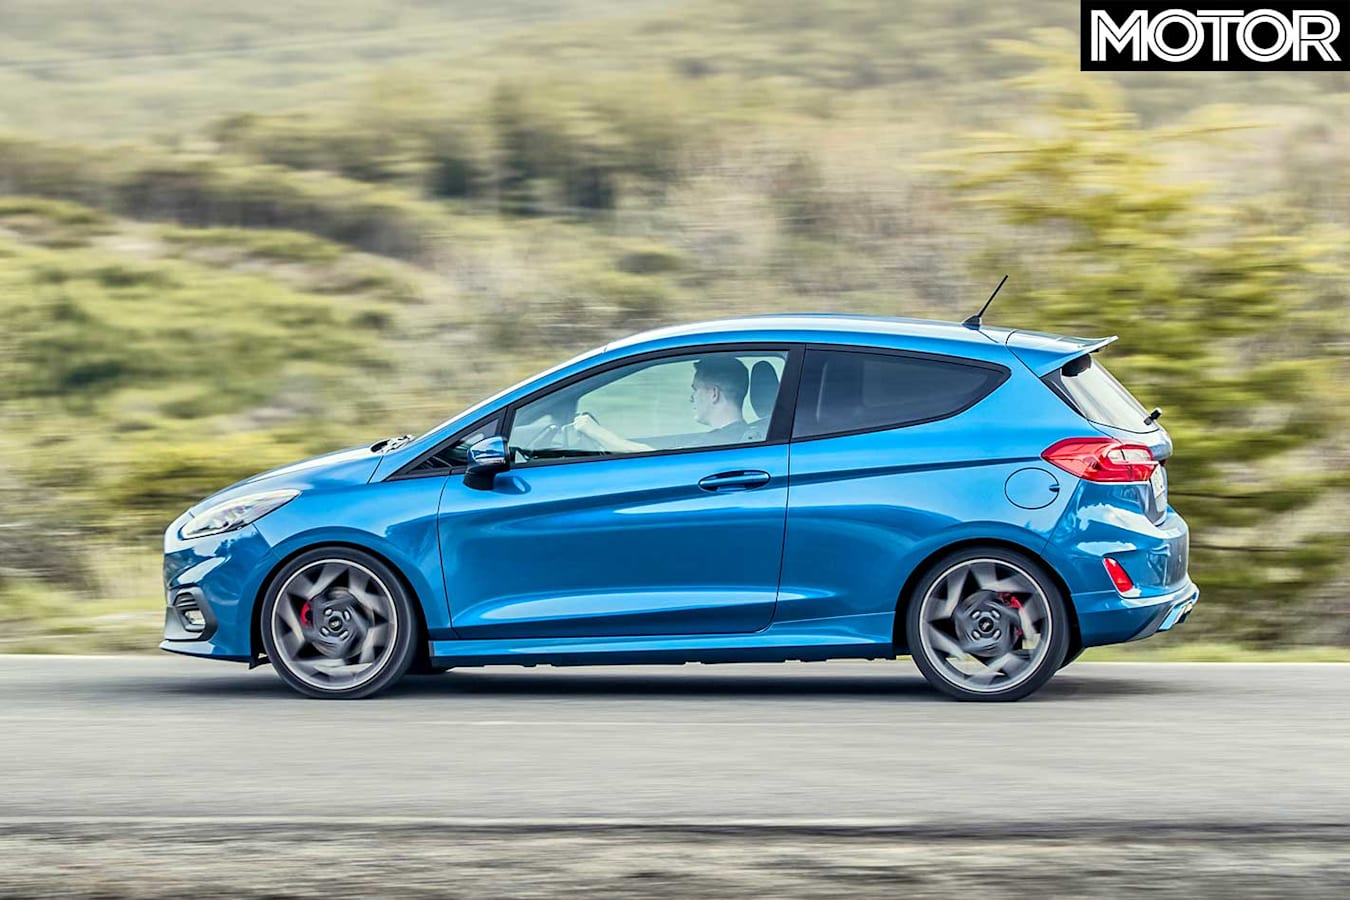 2018 Ford Fiesta St Performance Review Profile Dynamic Jpg